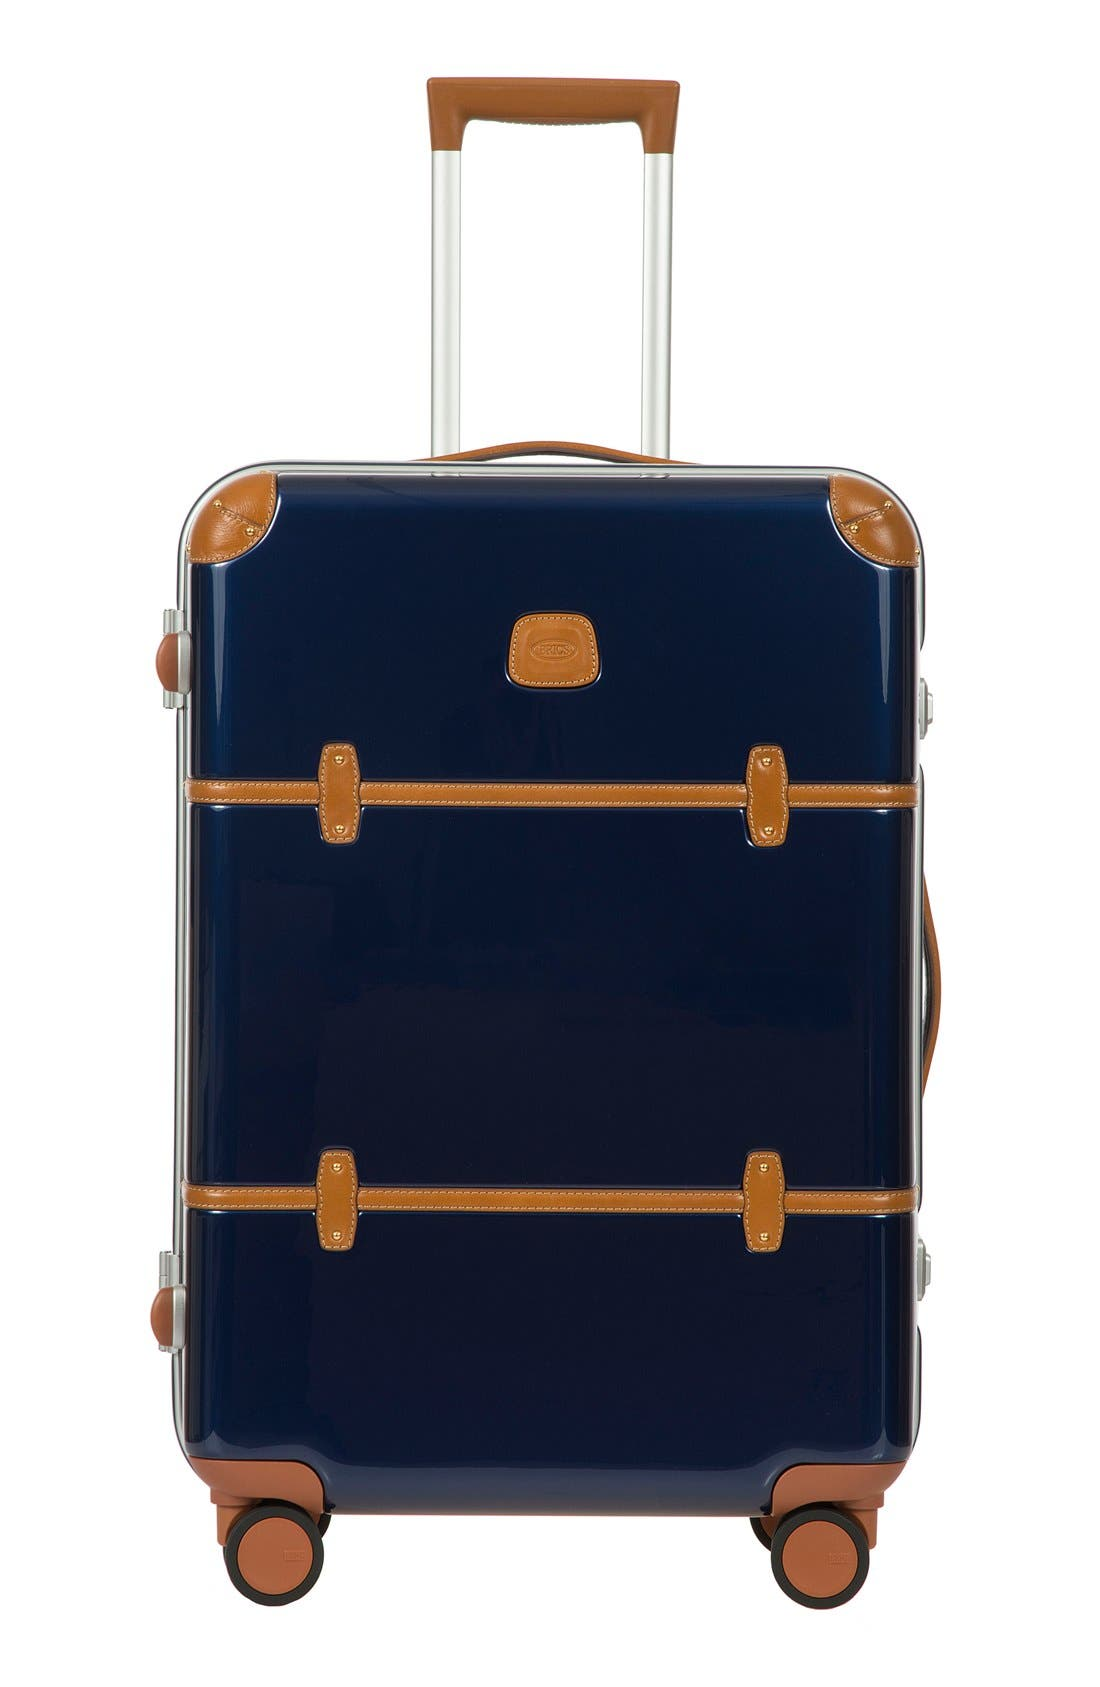 Bric's Bellagio Metallo 2.0 27 Inch Rolling Suitcase